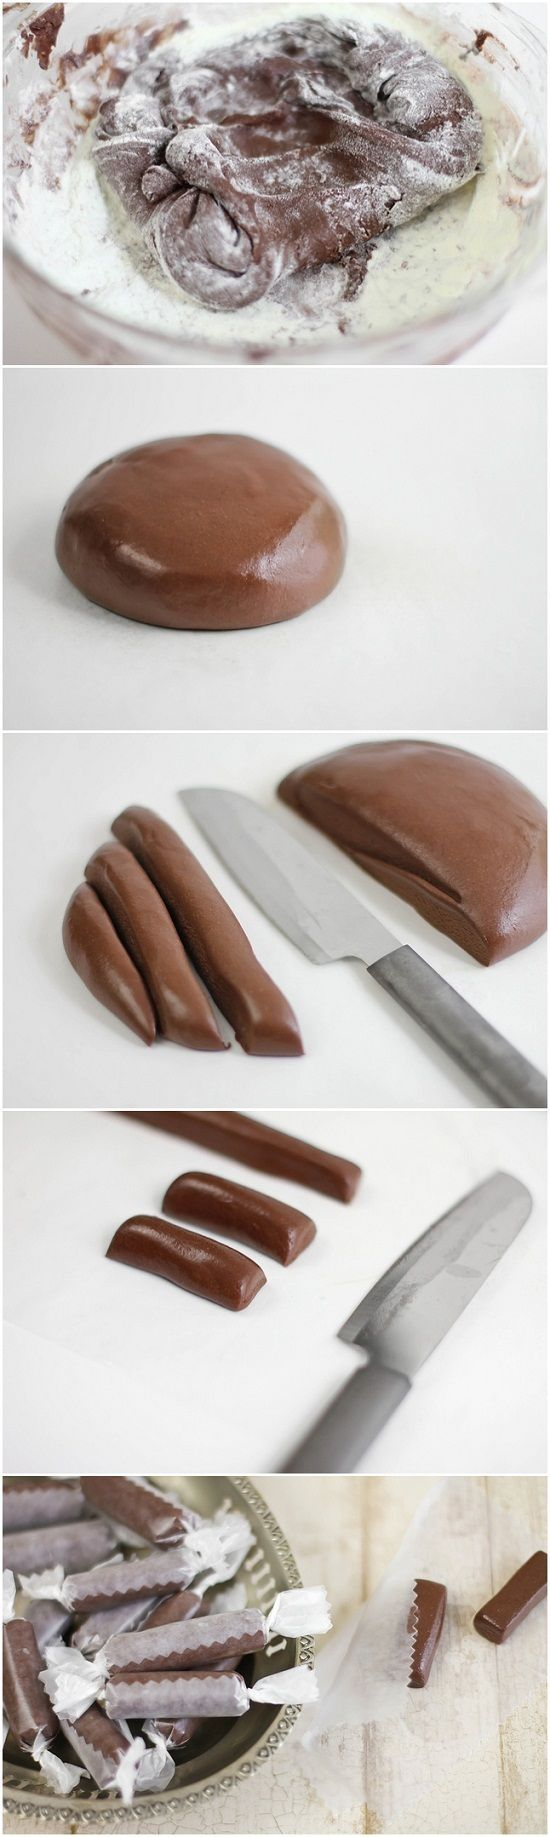 Homemade Tootsie Rolls - Bet the little ones would like to help make these